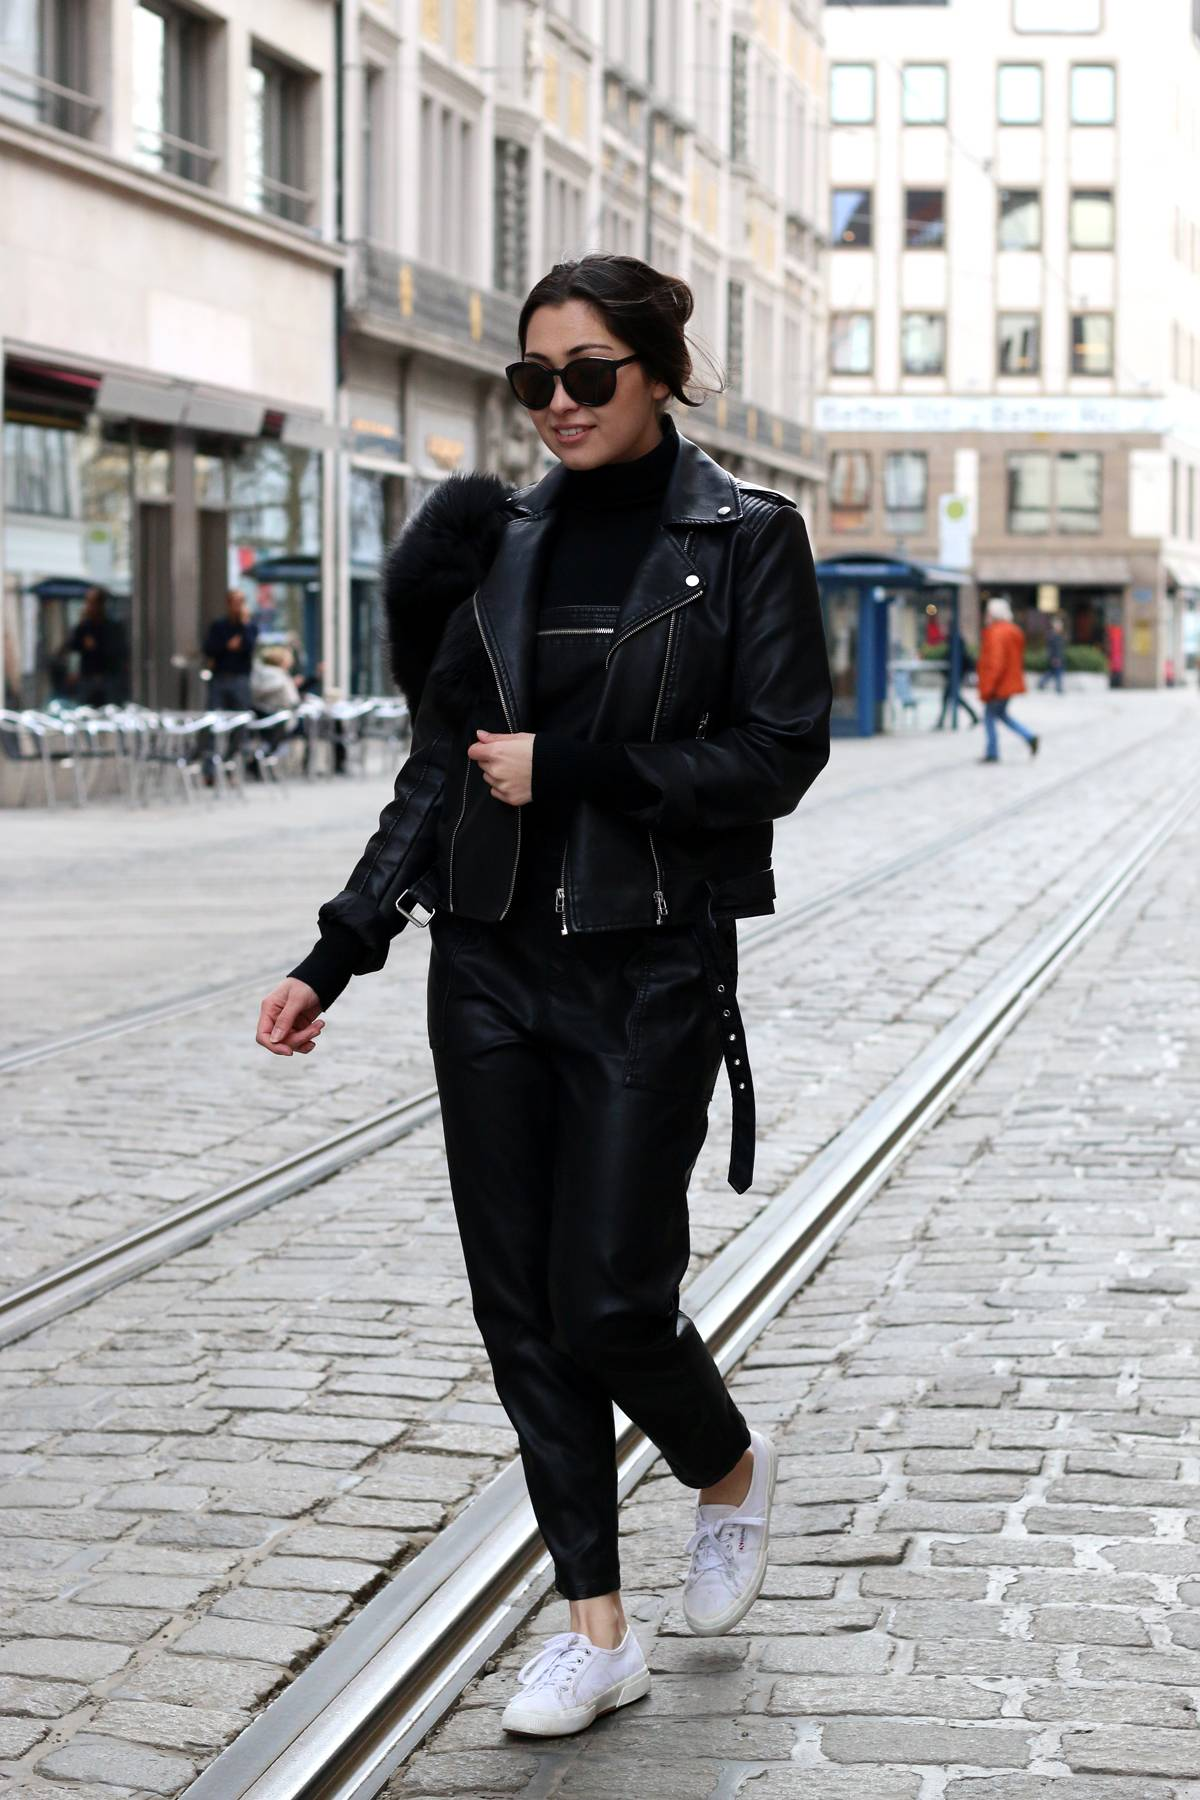 THE BLACK LEATHER OVERALL